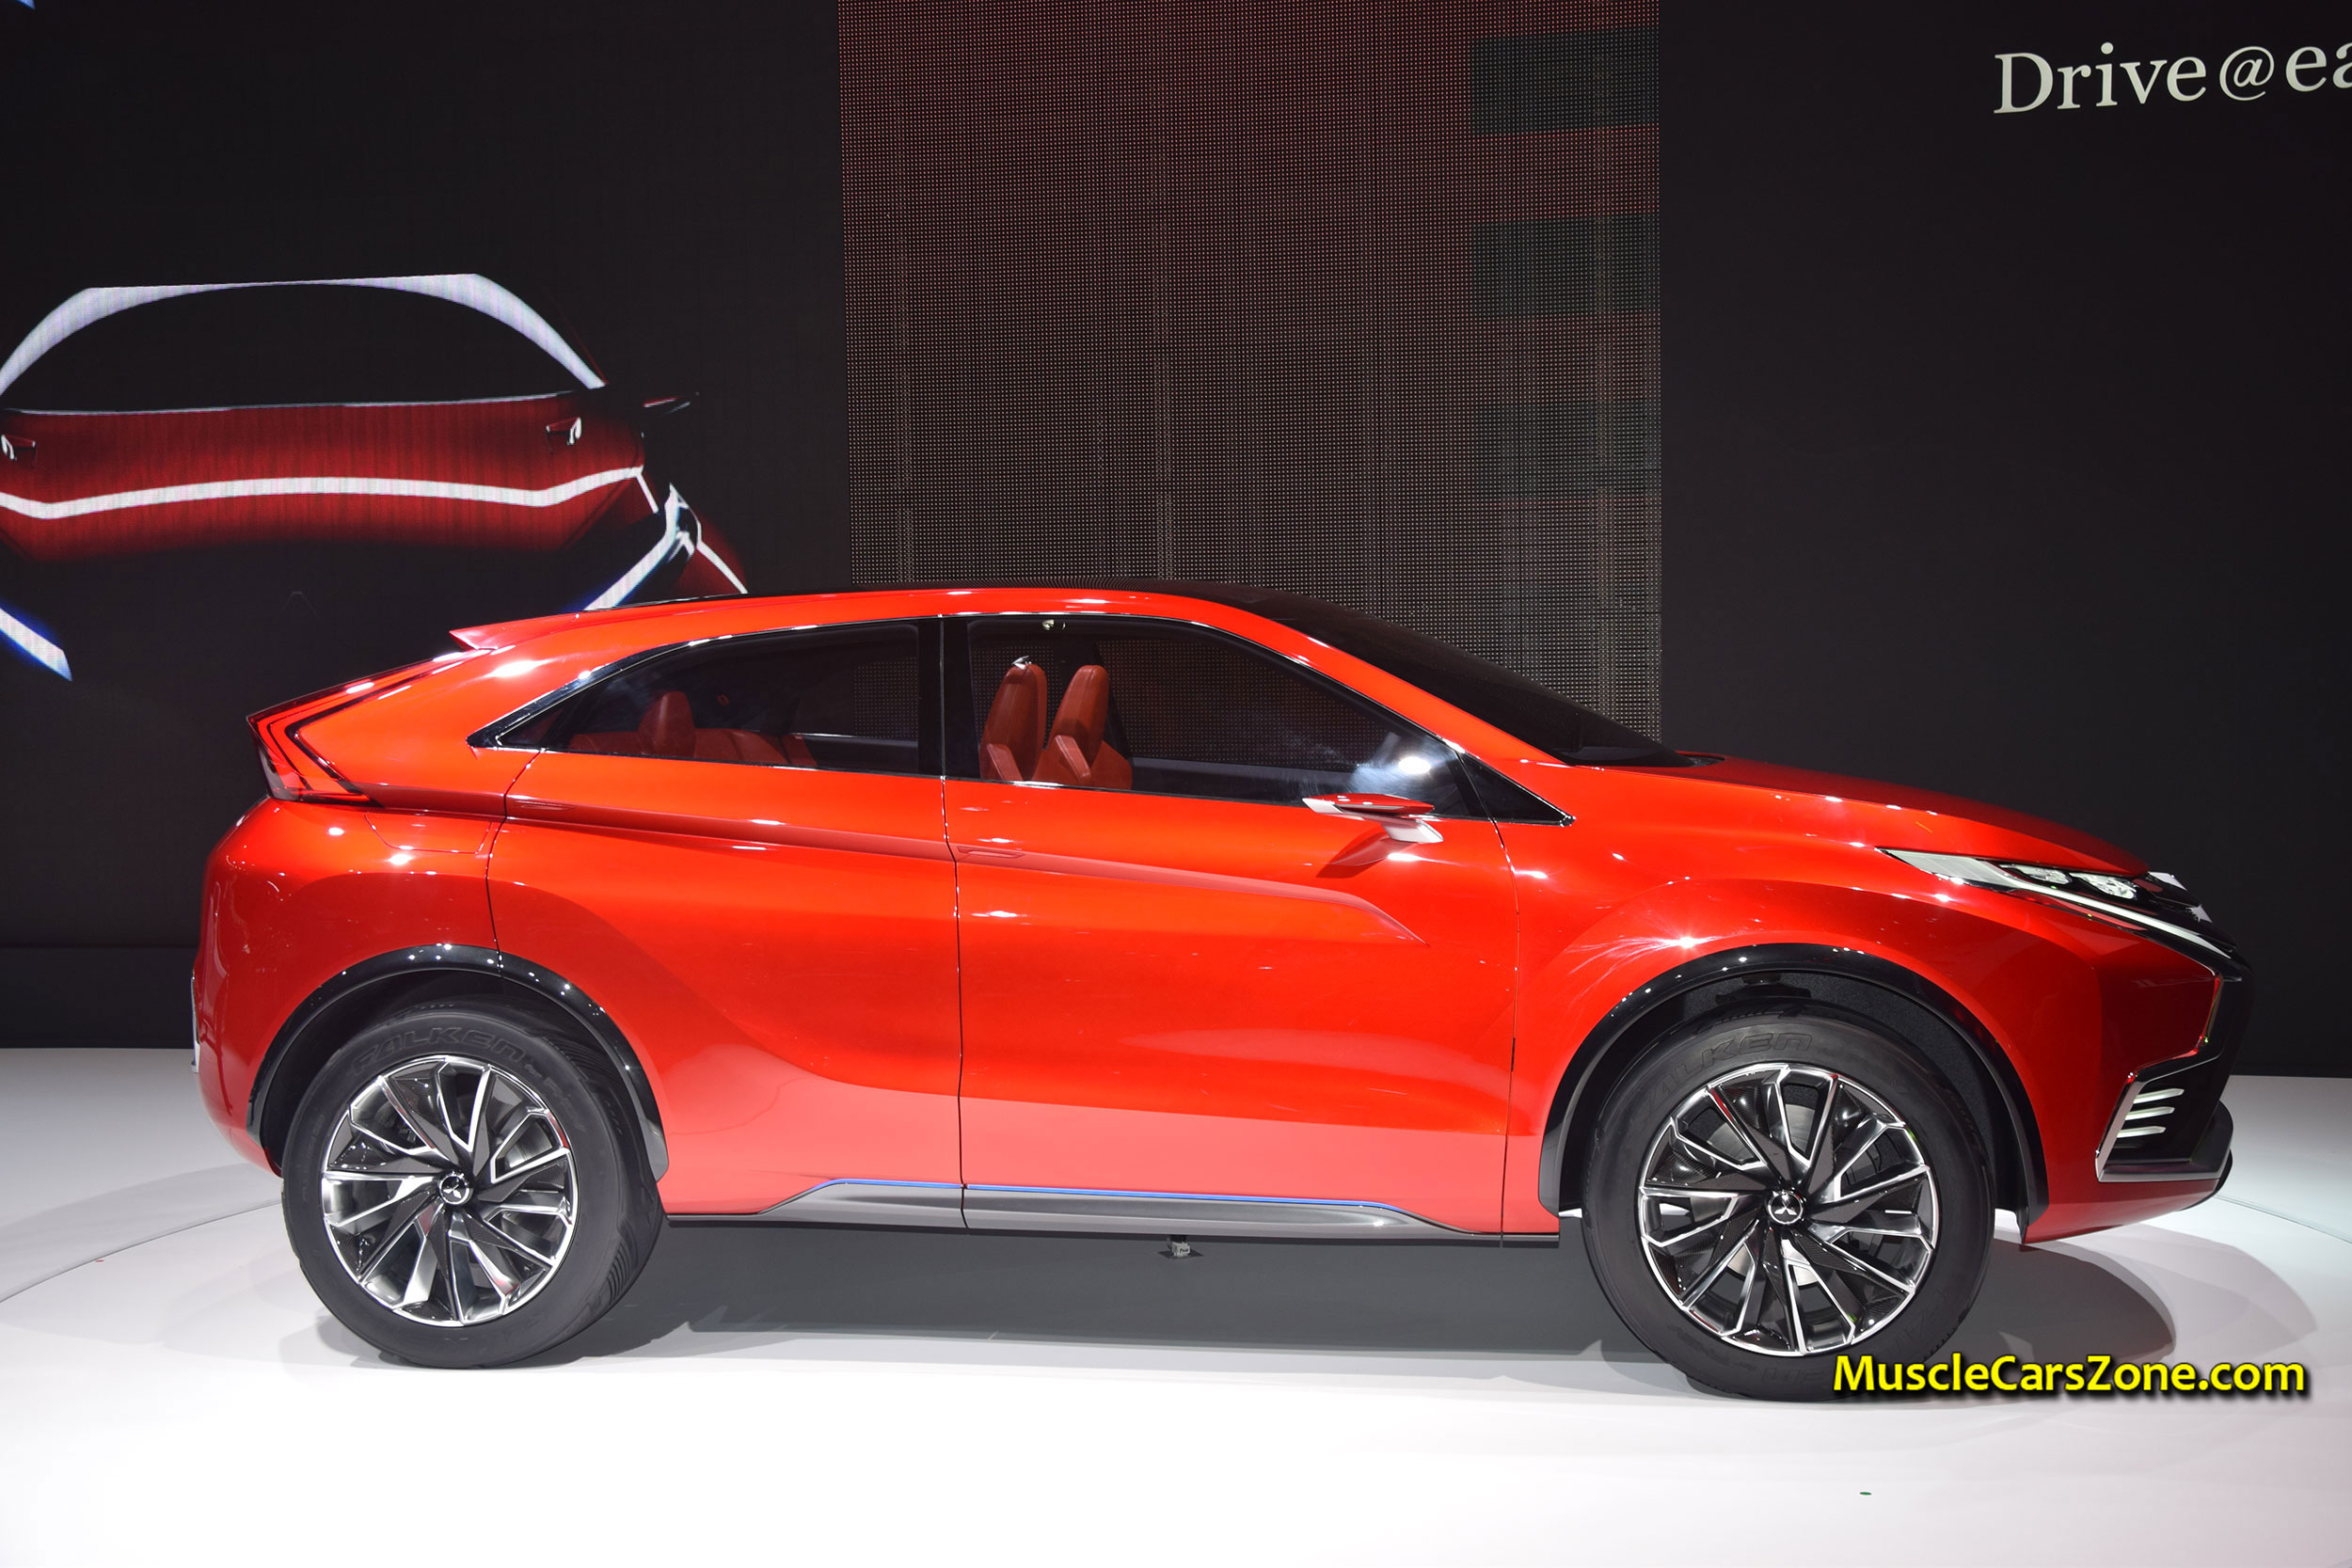 PREMIERE Of The MITSUBISHI PlugIn Hybrid Crossover Concept XR